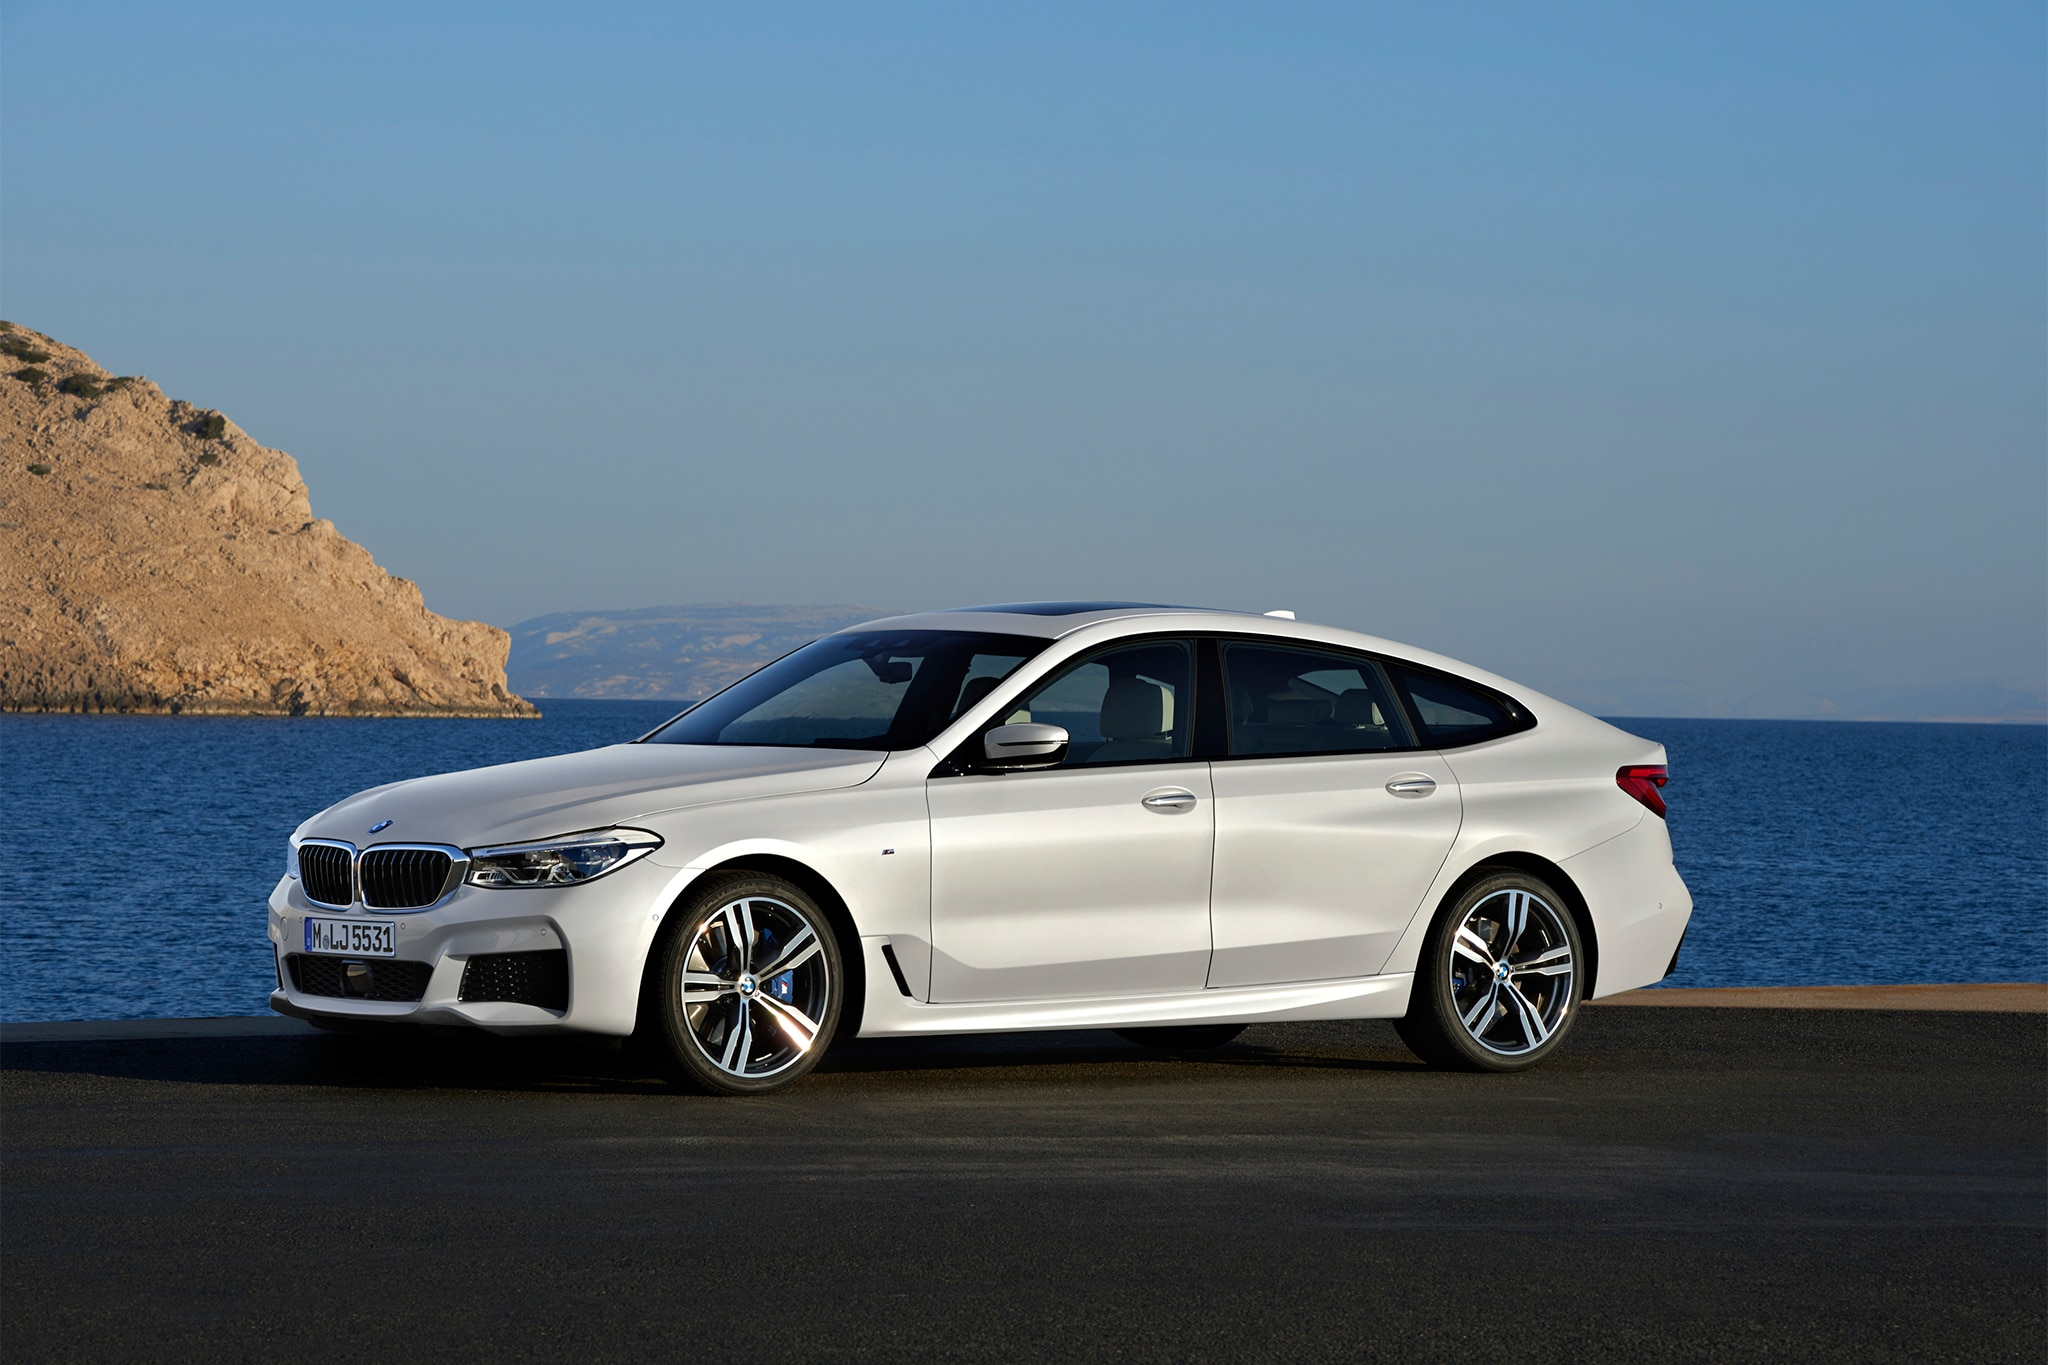 2018 bmw 640i xdrive gran turismo picks up where the 5 gt left off automobile magazine. Black Bedroom Furniture Sets. Home Design Ideas